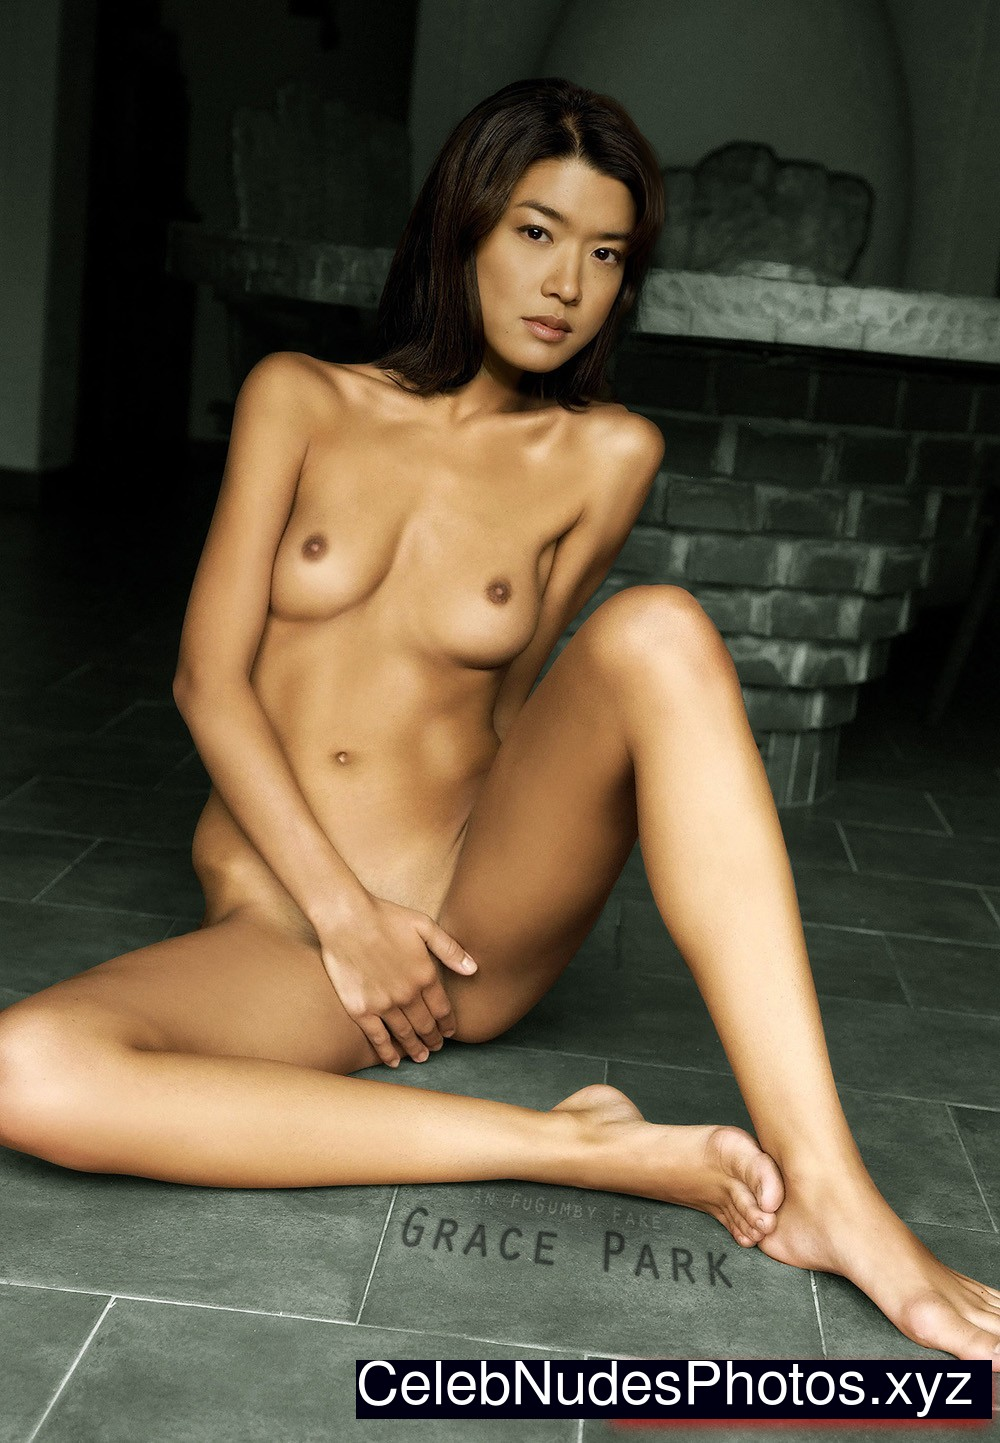 Grace Park Celebrity Leaked Nude Photo sexy 15